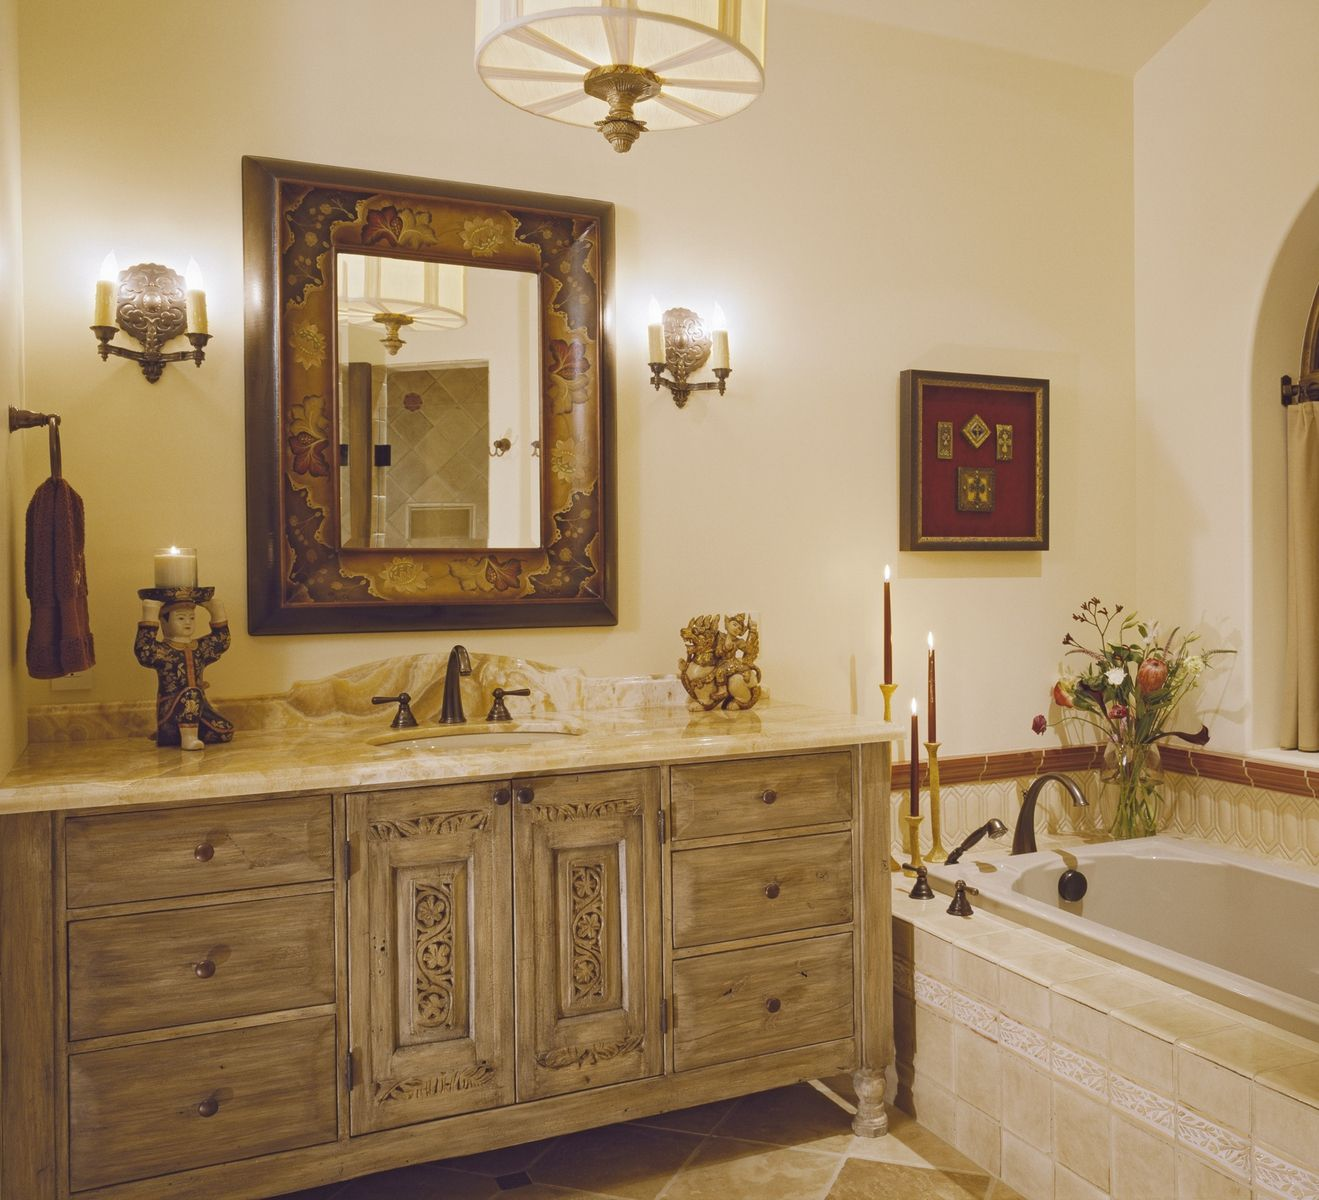 Hand Made Bathroom Vanity Cabinetry 2nd Master Bath By